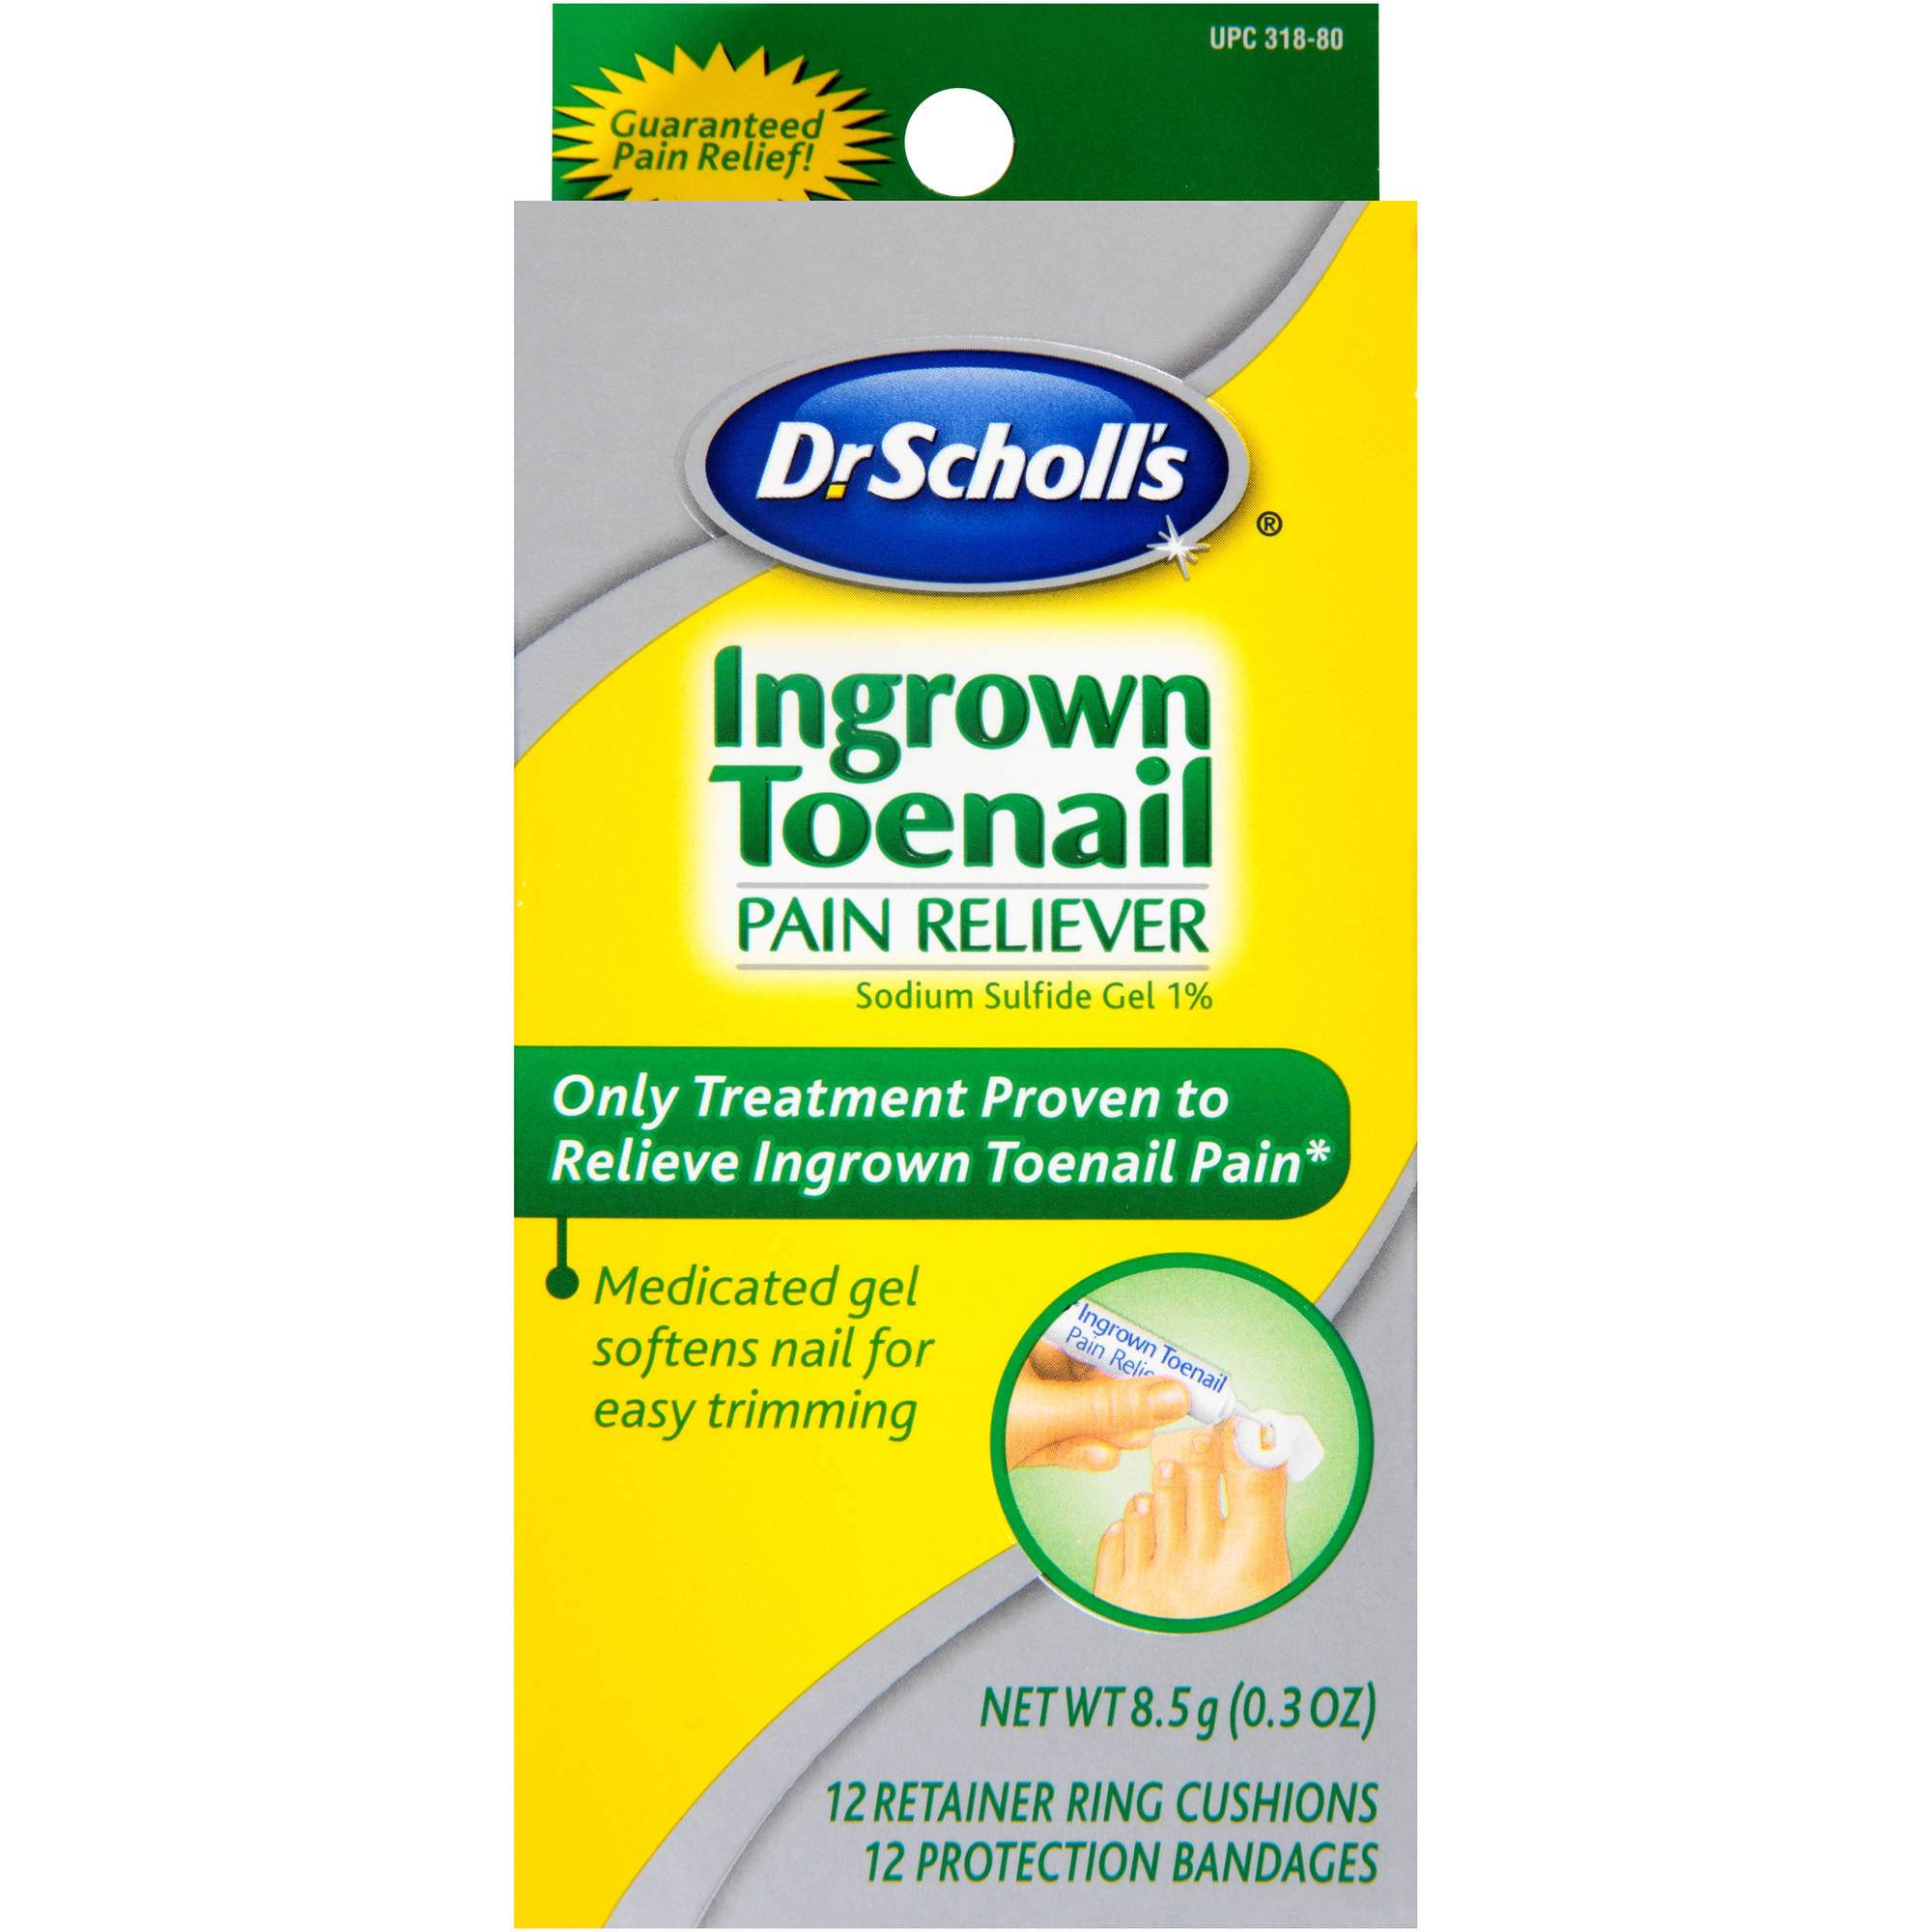 Dr. Scholl's Ingrown Toenail Pain Reliever, 0.3 oz